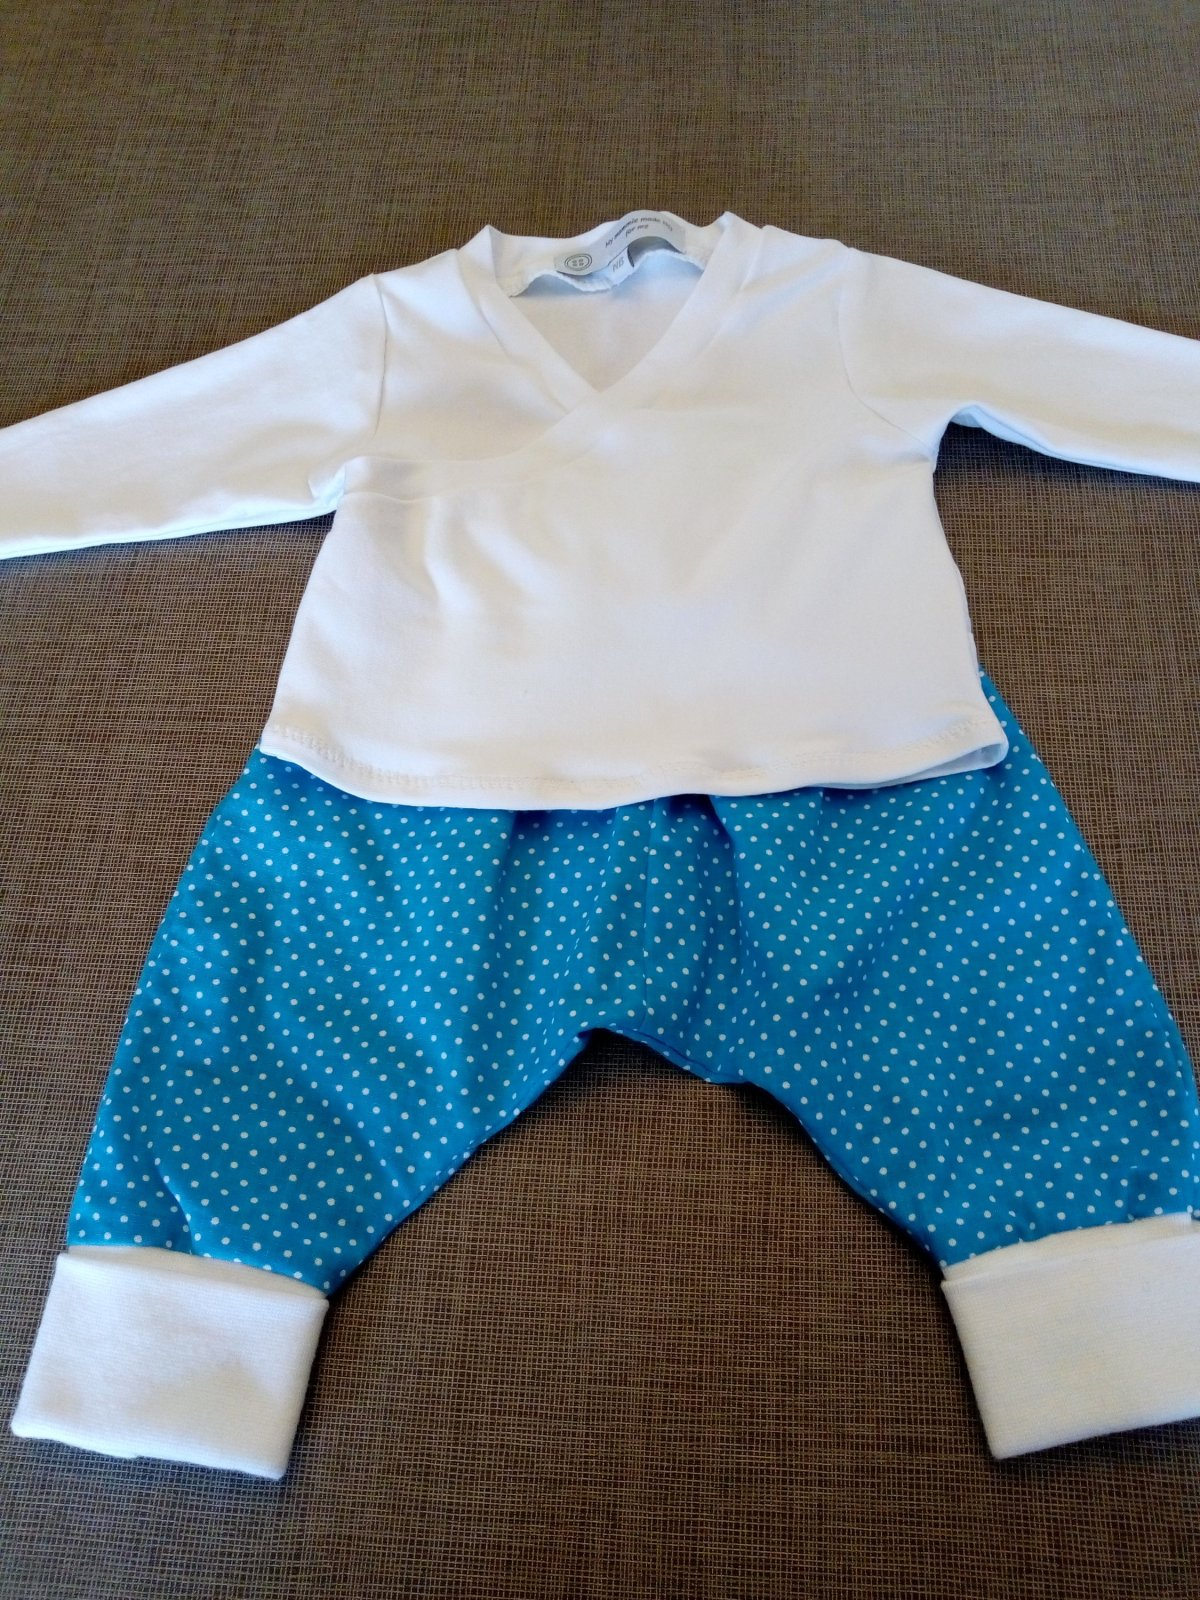 A flat-lay of a baby outfit, with blue and white spotted trousers and a white vee-neck top